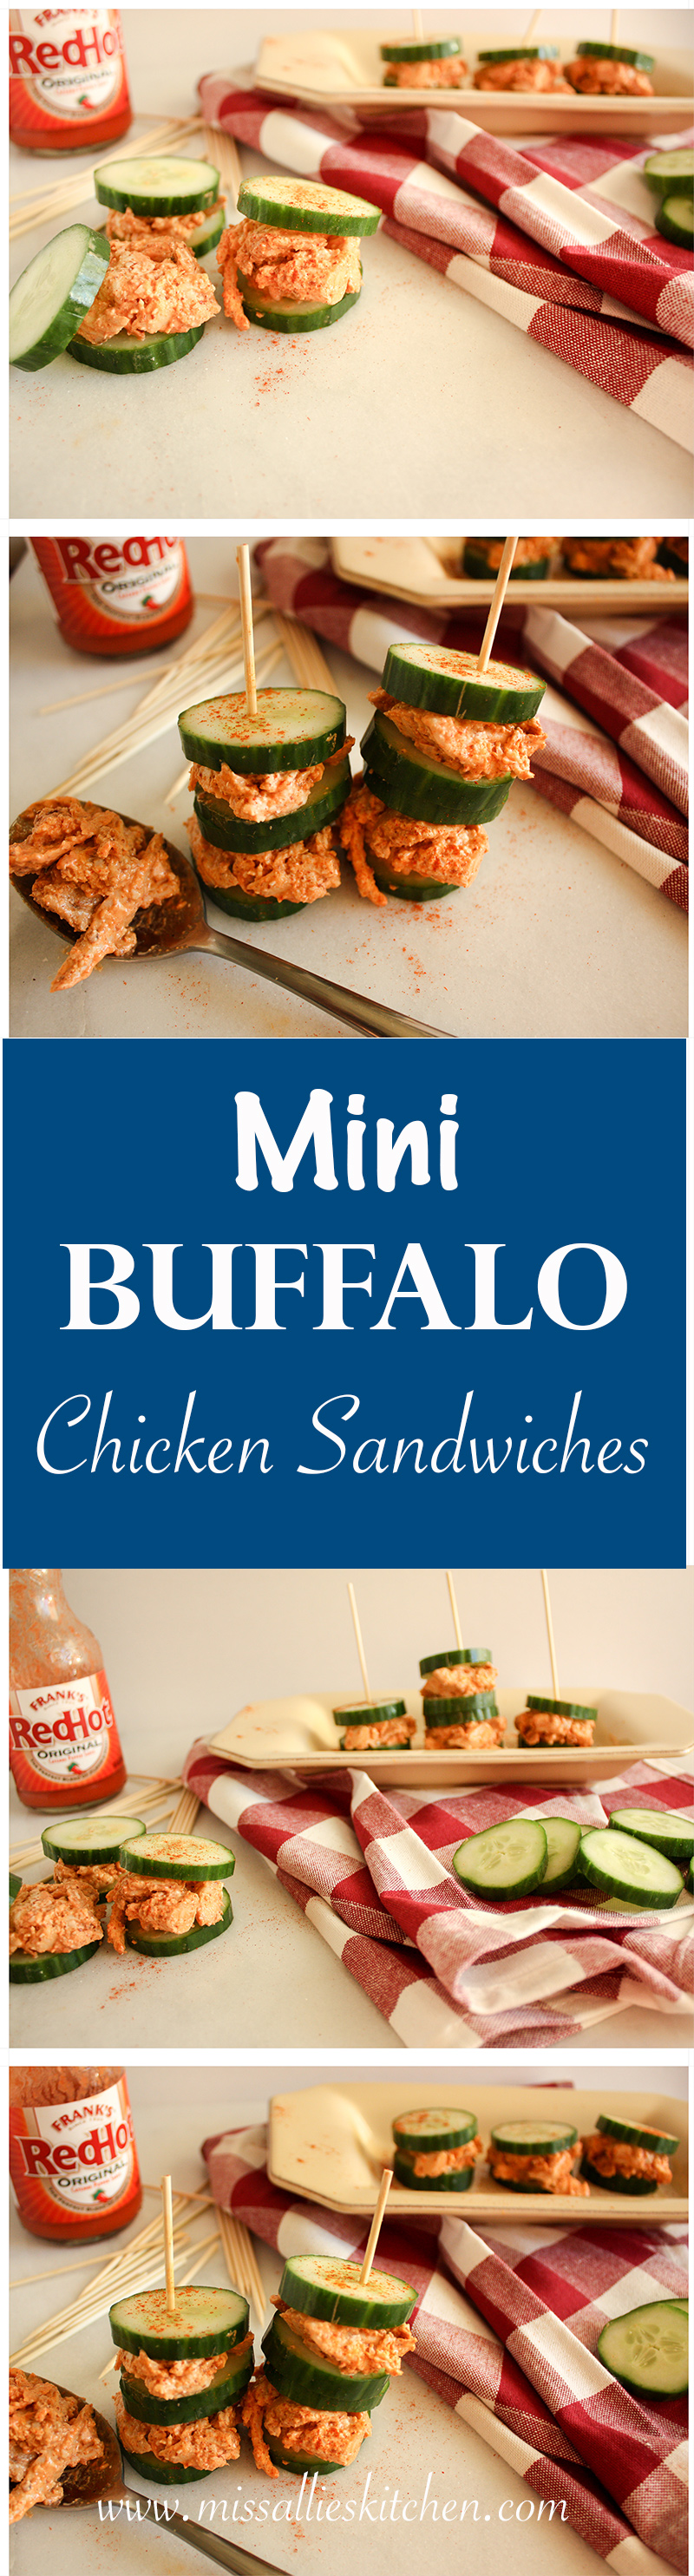 mini-buffalo-chicken-sandwiches-miss-allies-kitchen